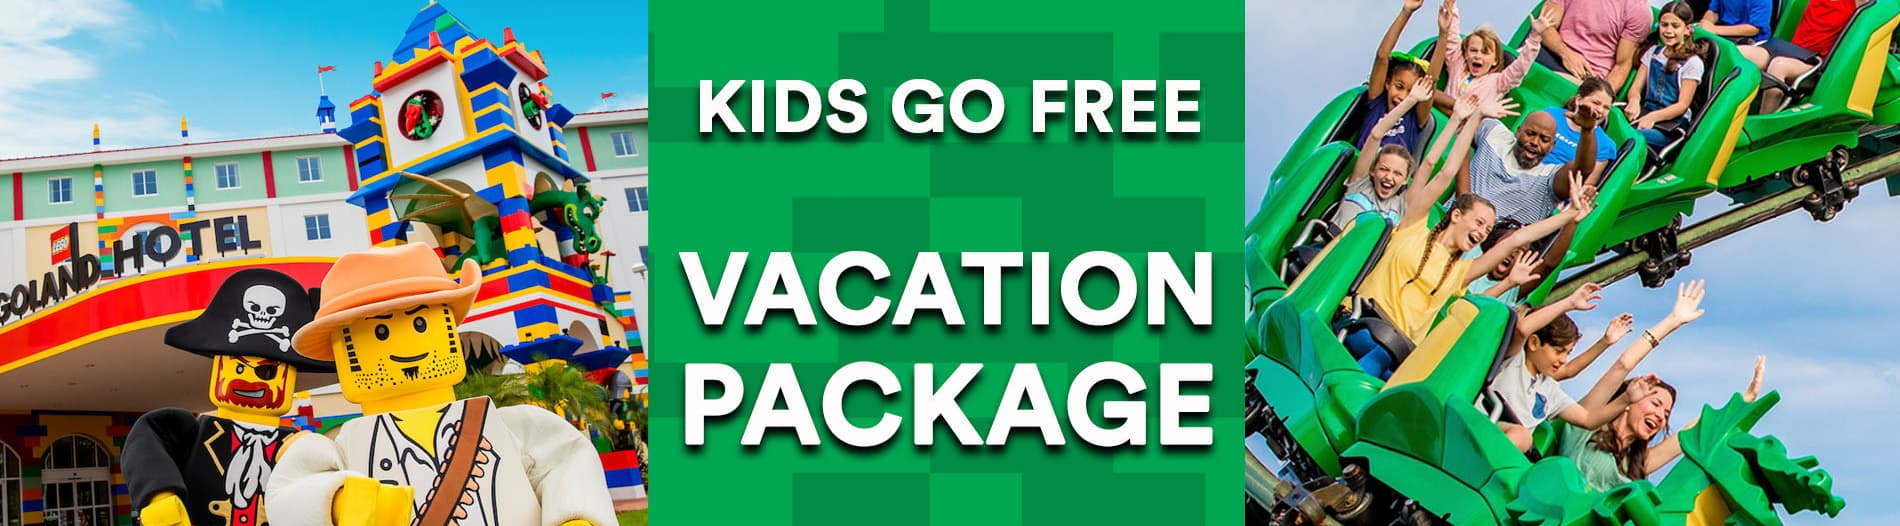 LEGOLAND Kids Go Free Vacation Package